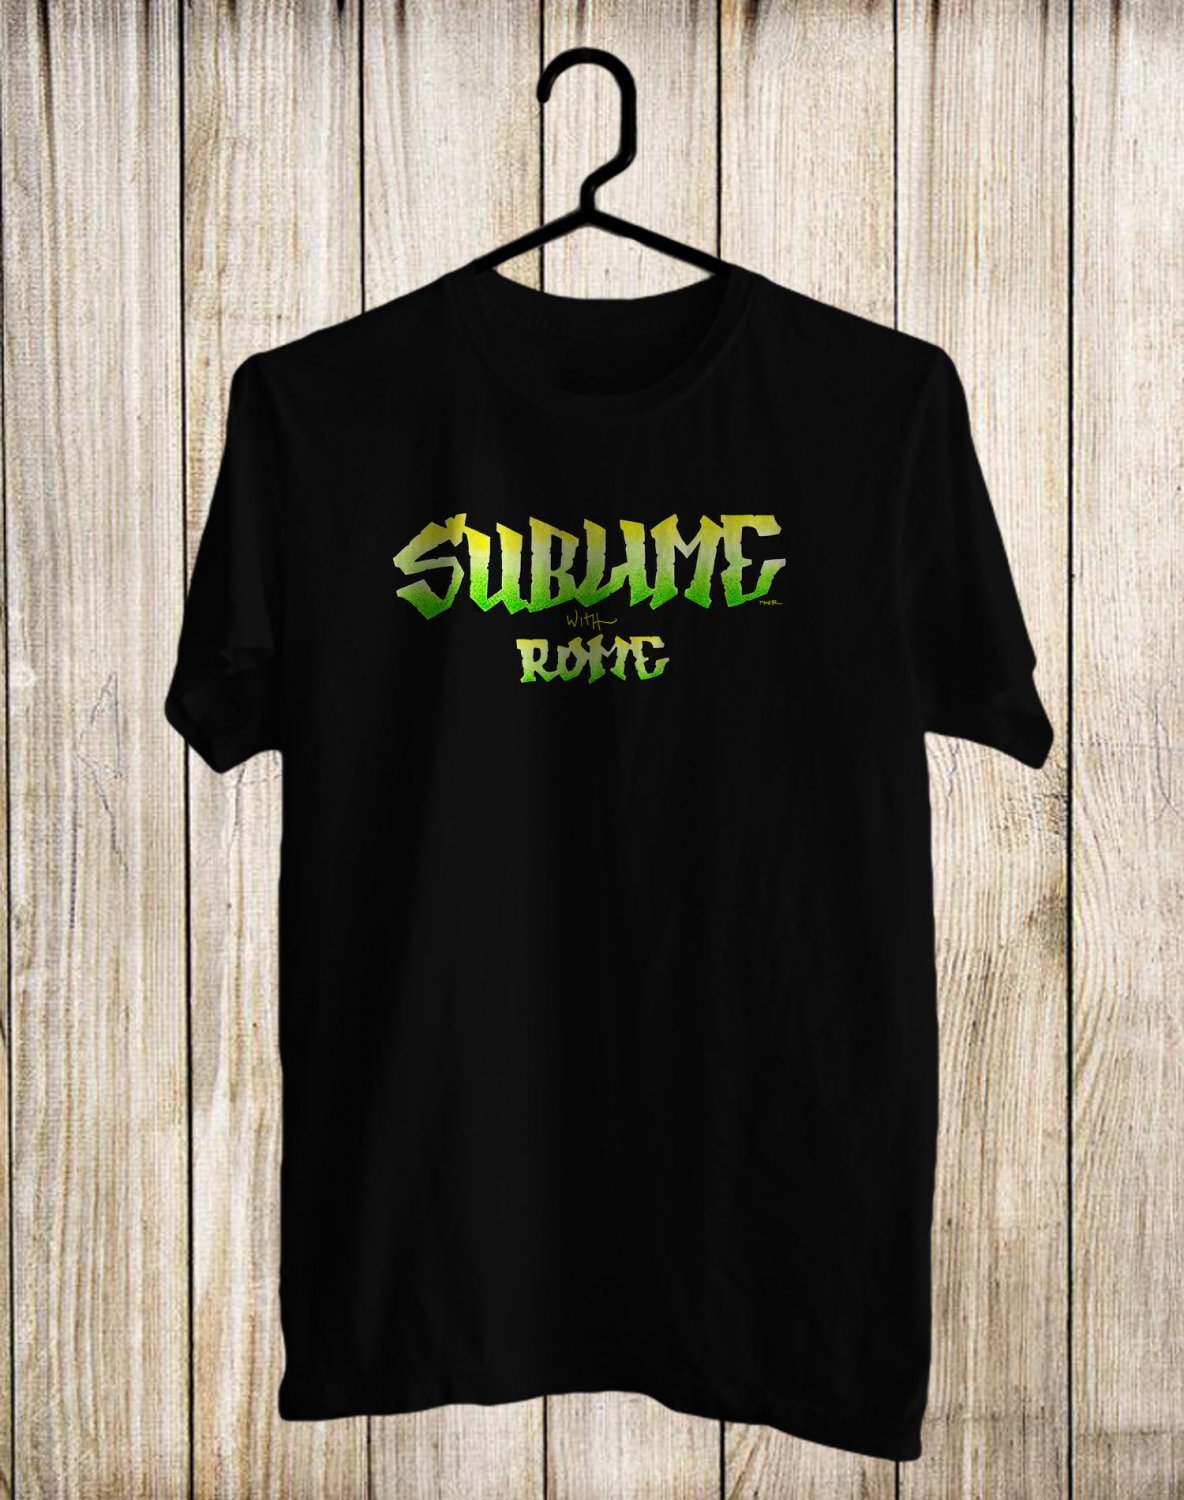 Sublime With Rome Tour 2017 Black Tee's Front Side by Complexart